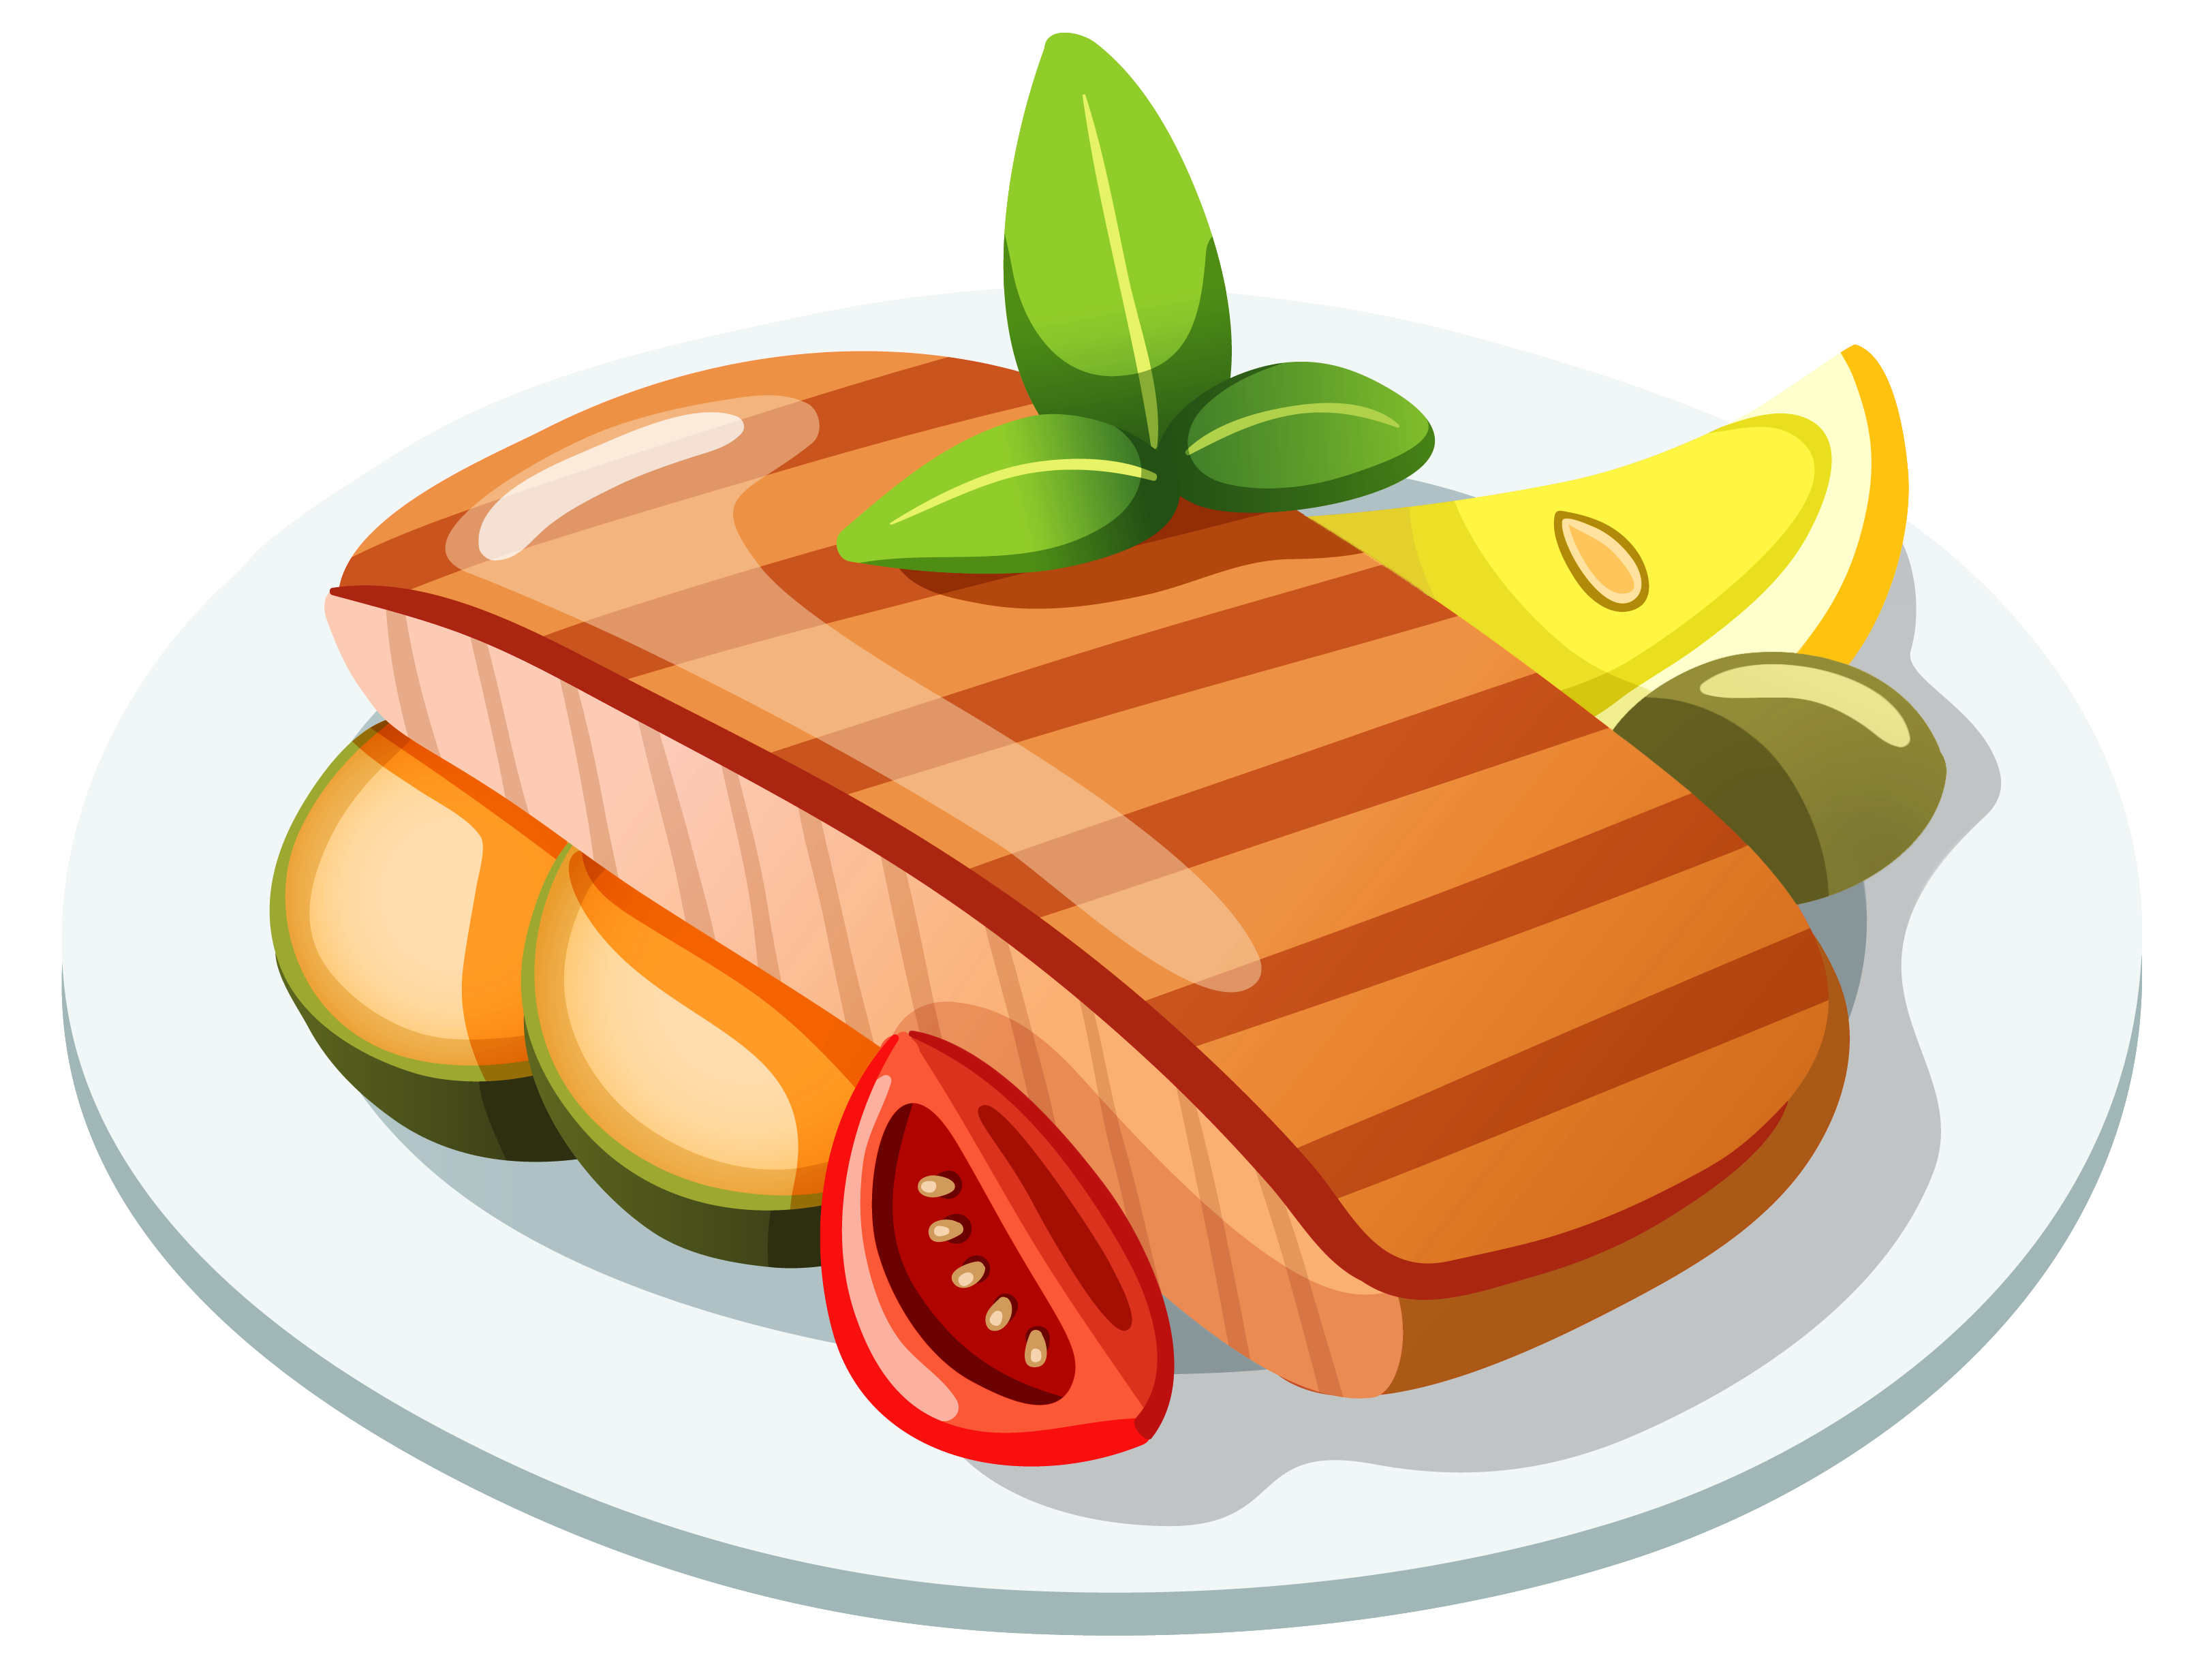 Steak clip art free vector in open office drawing svg.